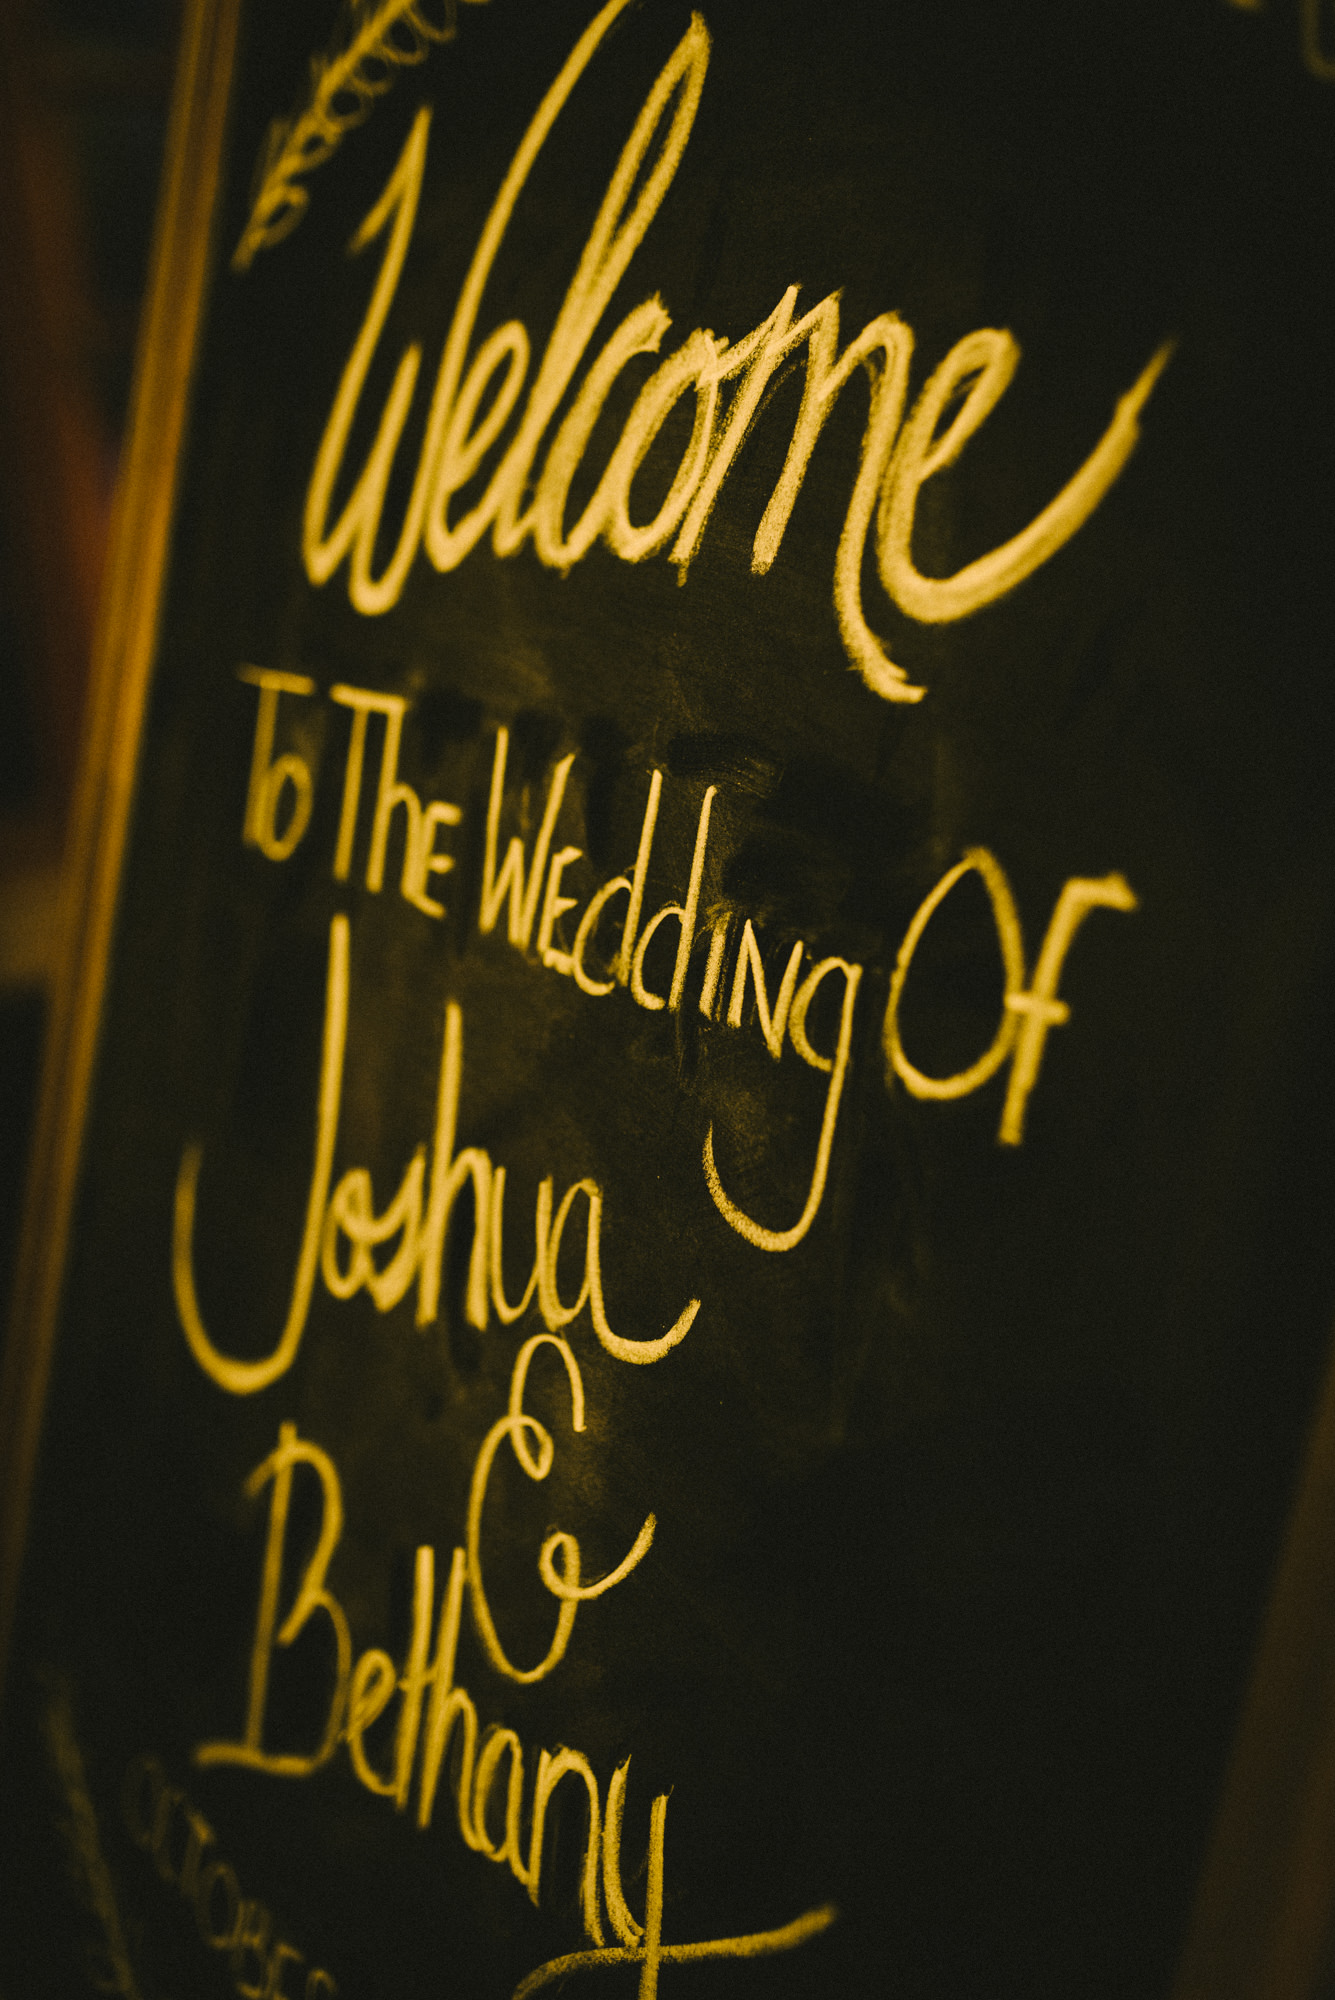 Wedding_Bethany-Josh-1315-wedding-des-moines-bethany-josh.jpg